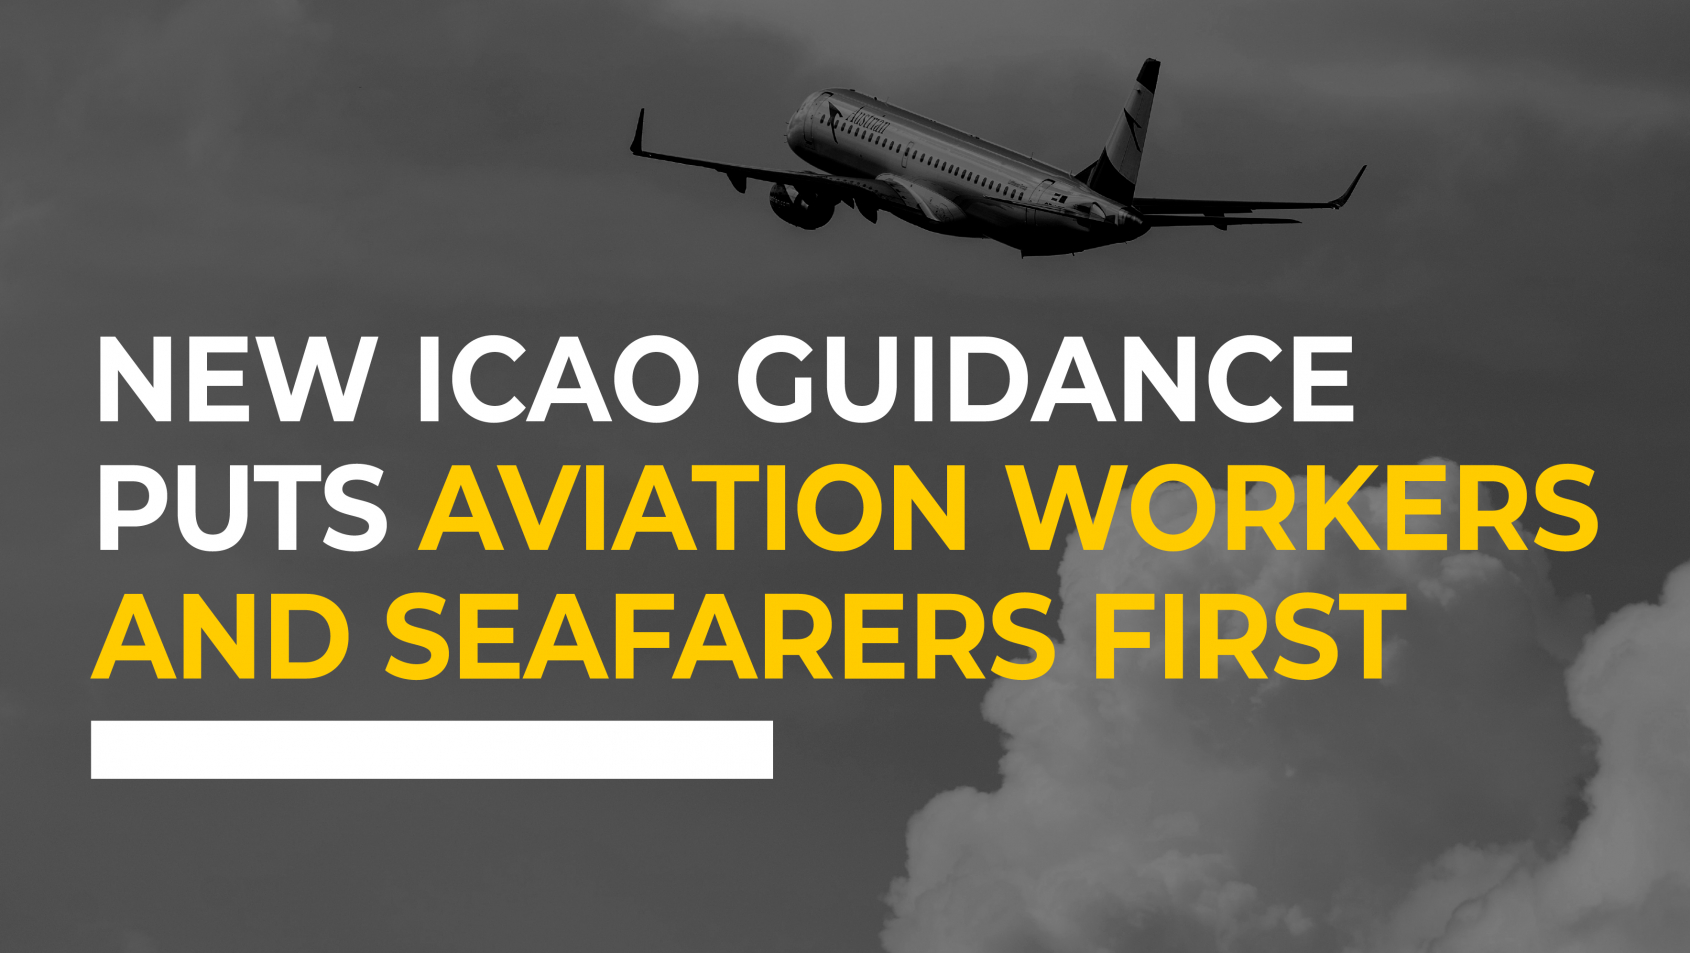 ITF Civil Aviation ensures new ICAO guidance puts aviation workers and seafarers first